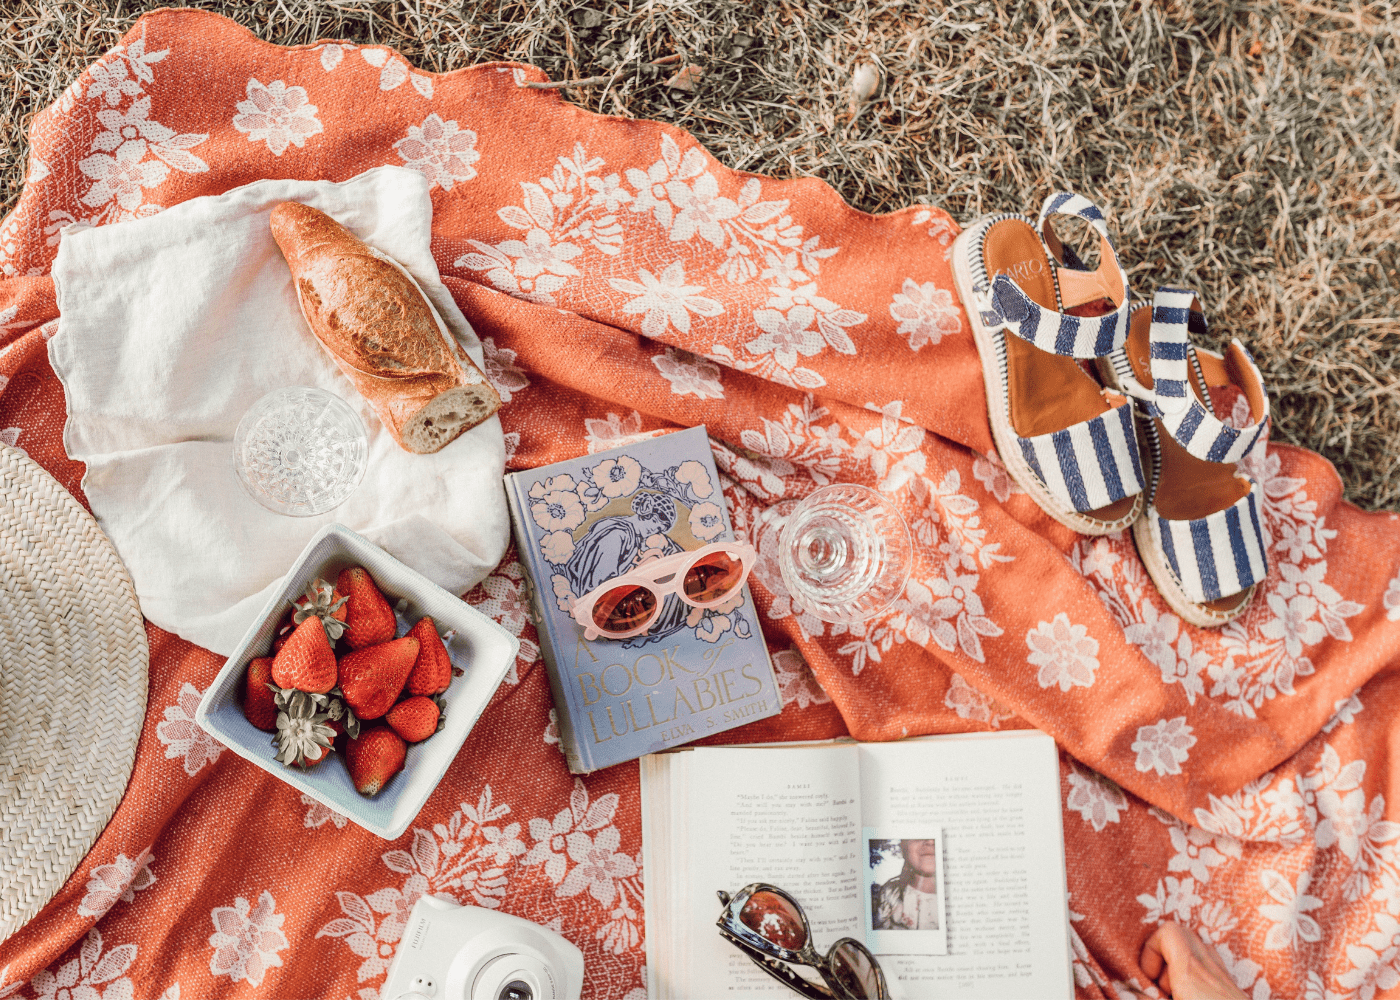 Everything you need for the perfect picnic: Food, booze, breezy locations and beyond!